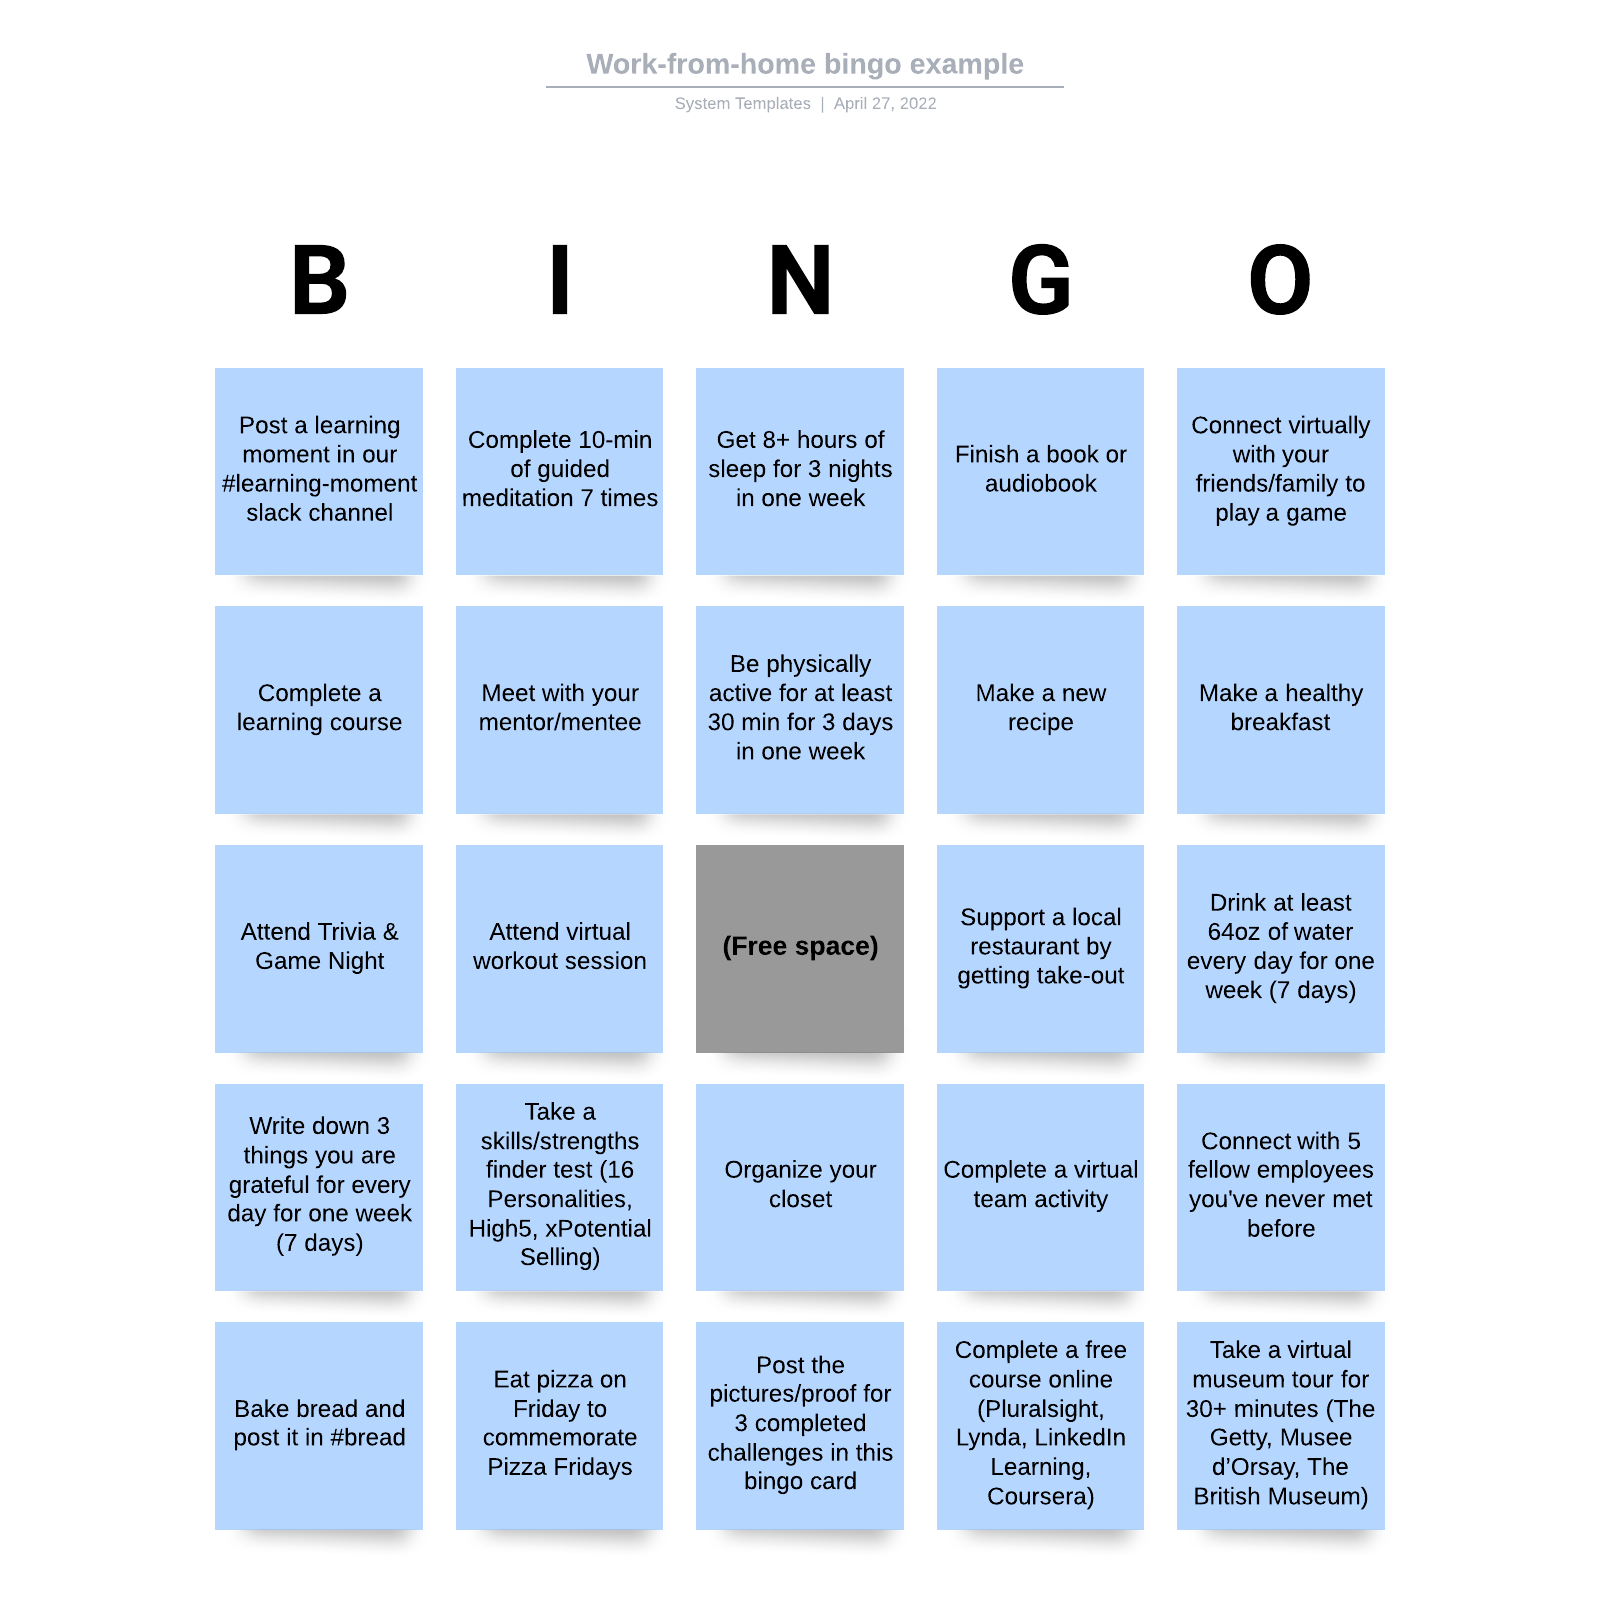 Work-from-home bingo example